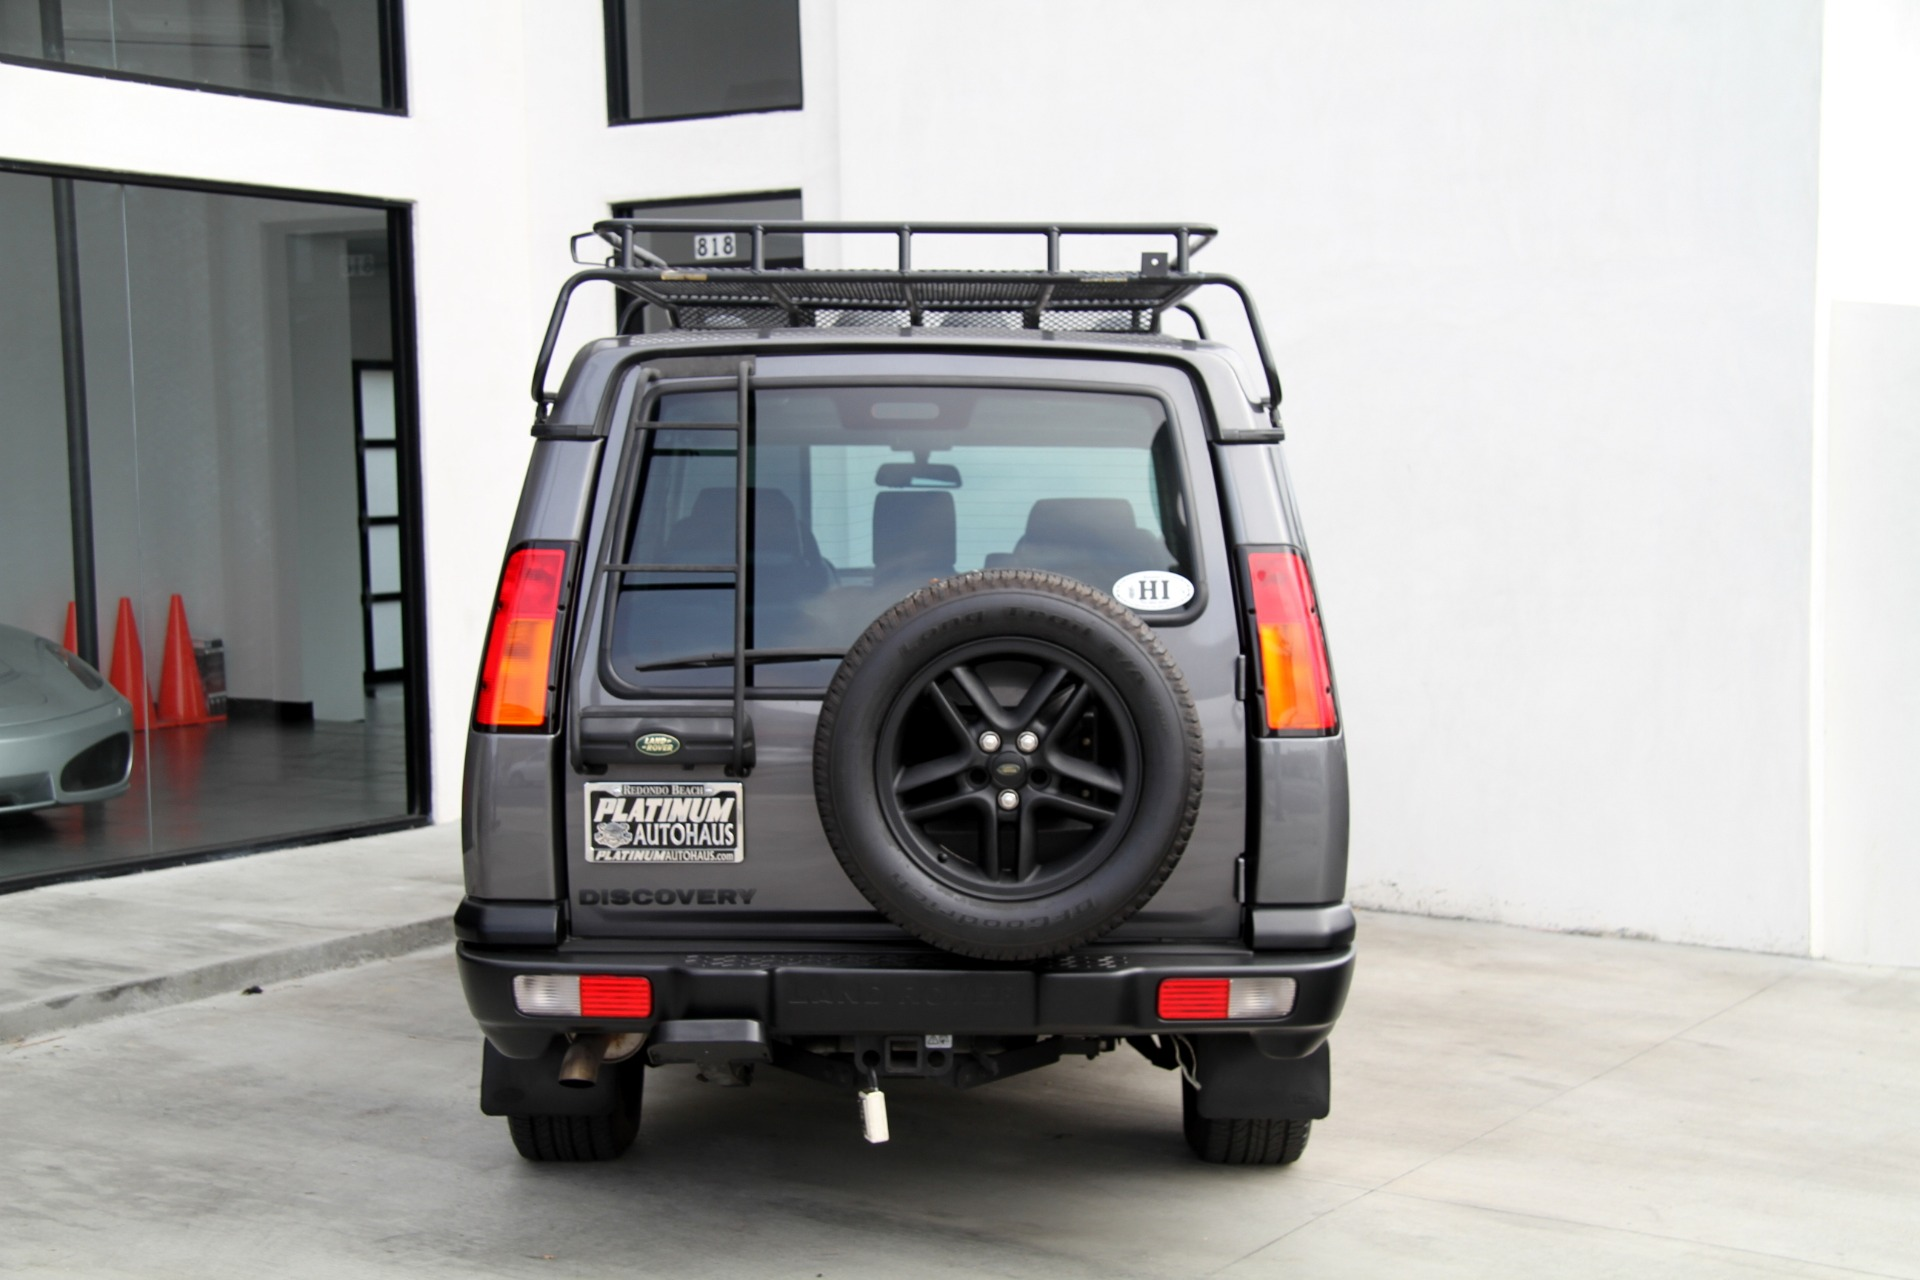 2004 Land Rover Discovery II SE7 Stock # 856998 for sale near Redondo Beach, CA | CA Land Rover ...